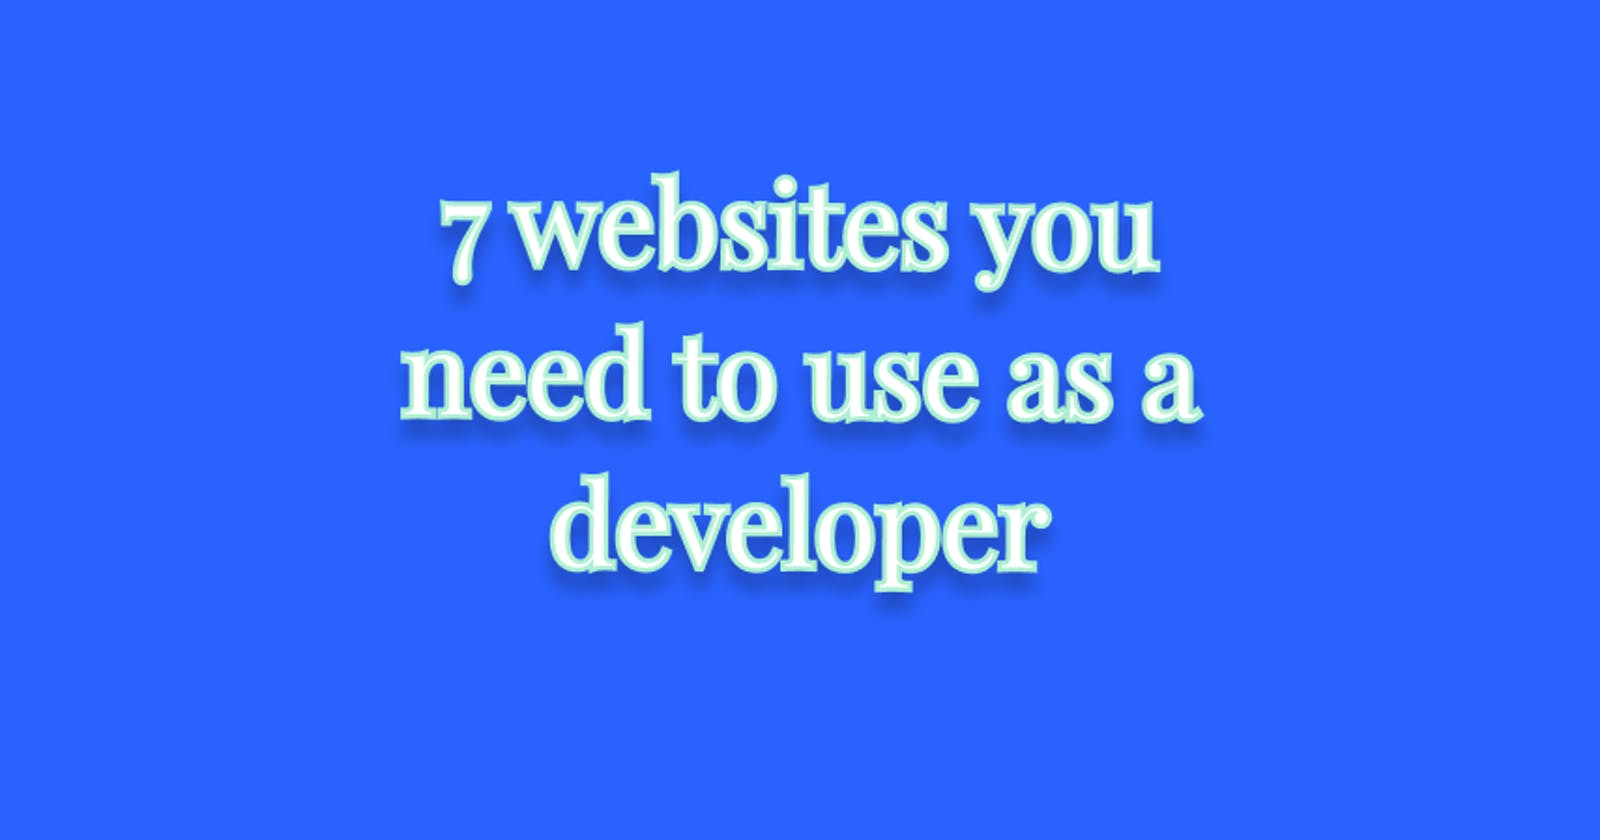 7 websites you need to use as a developer